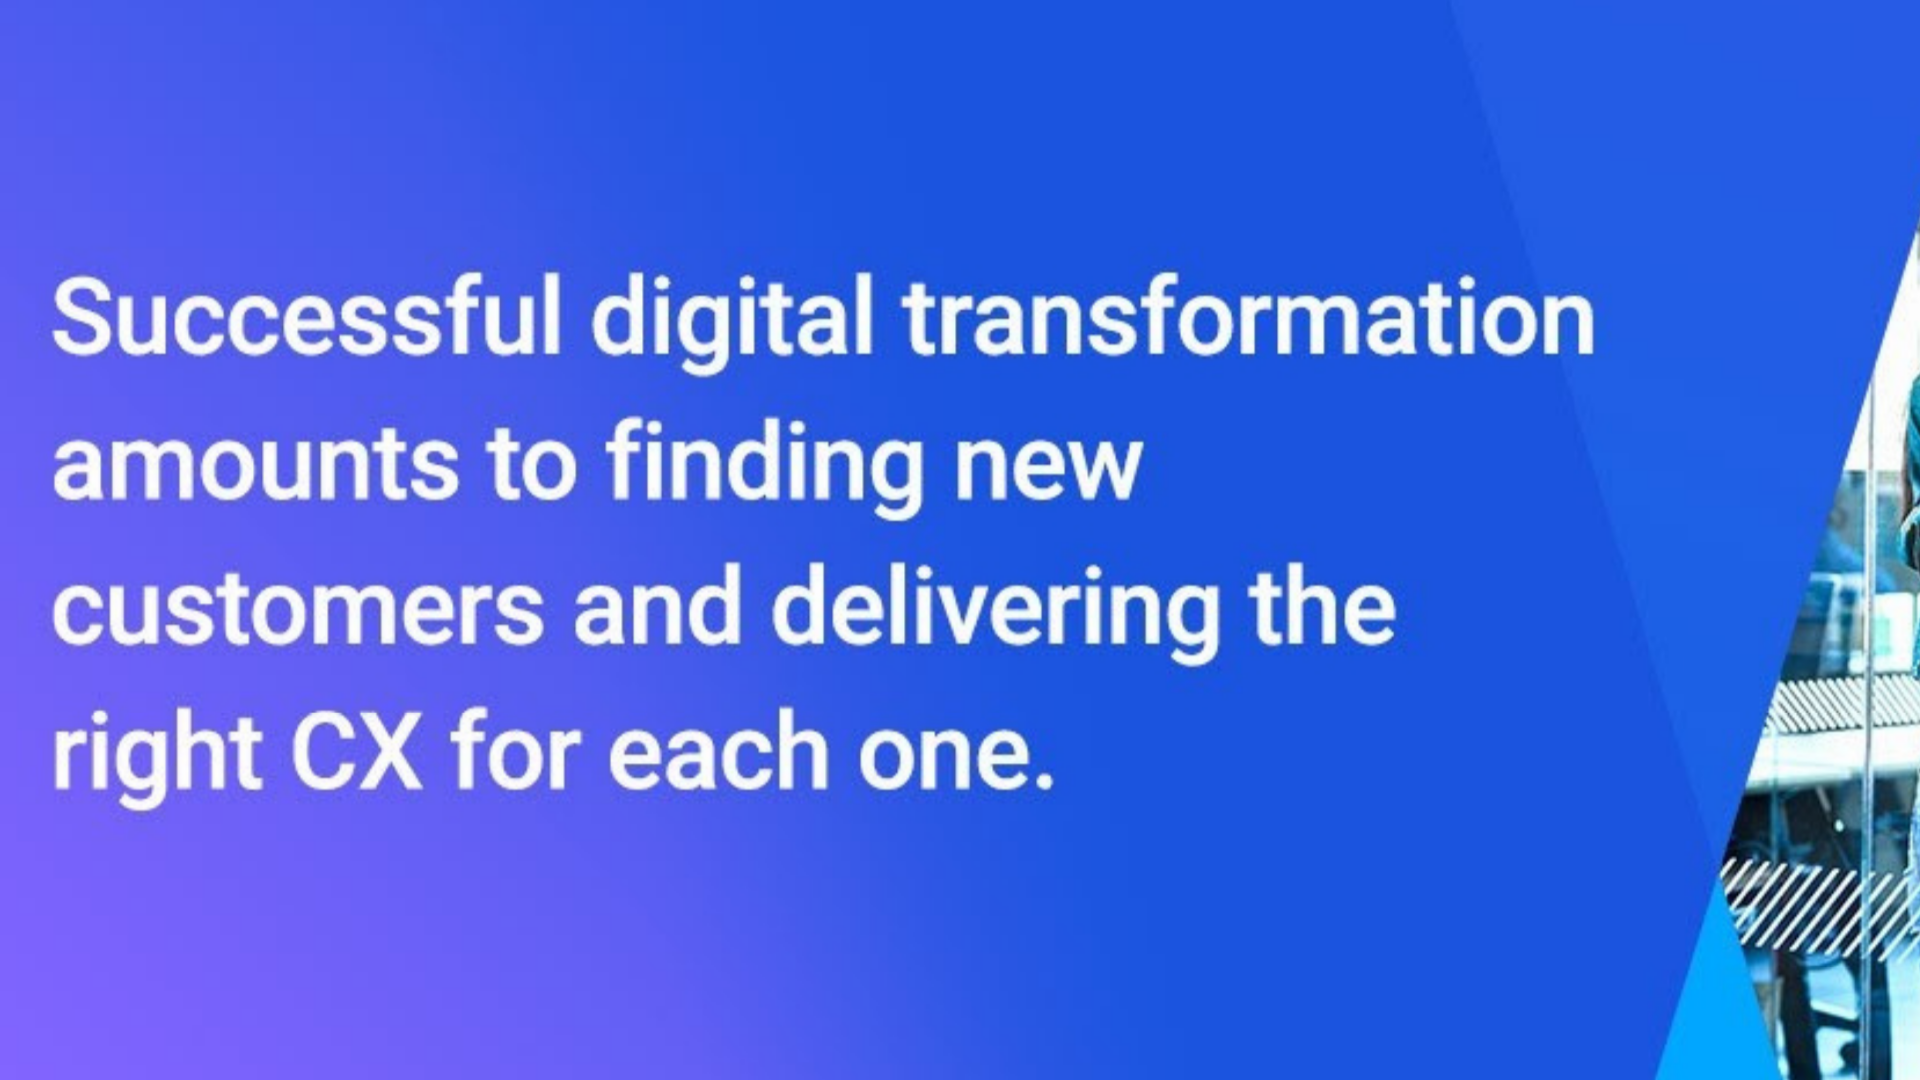 A Data-First, Customer-Driven Approach to Digital Transformation